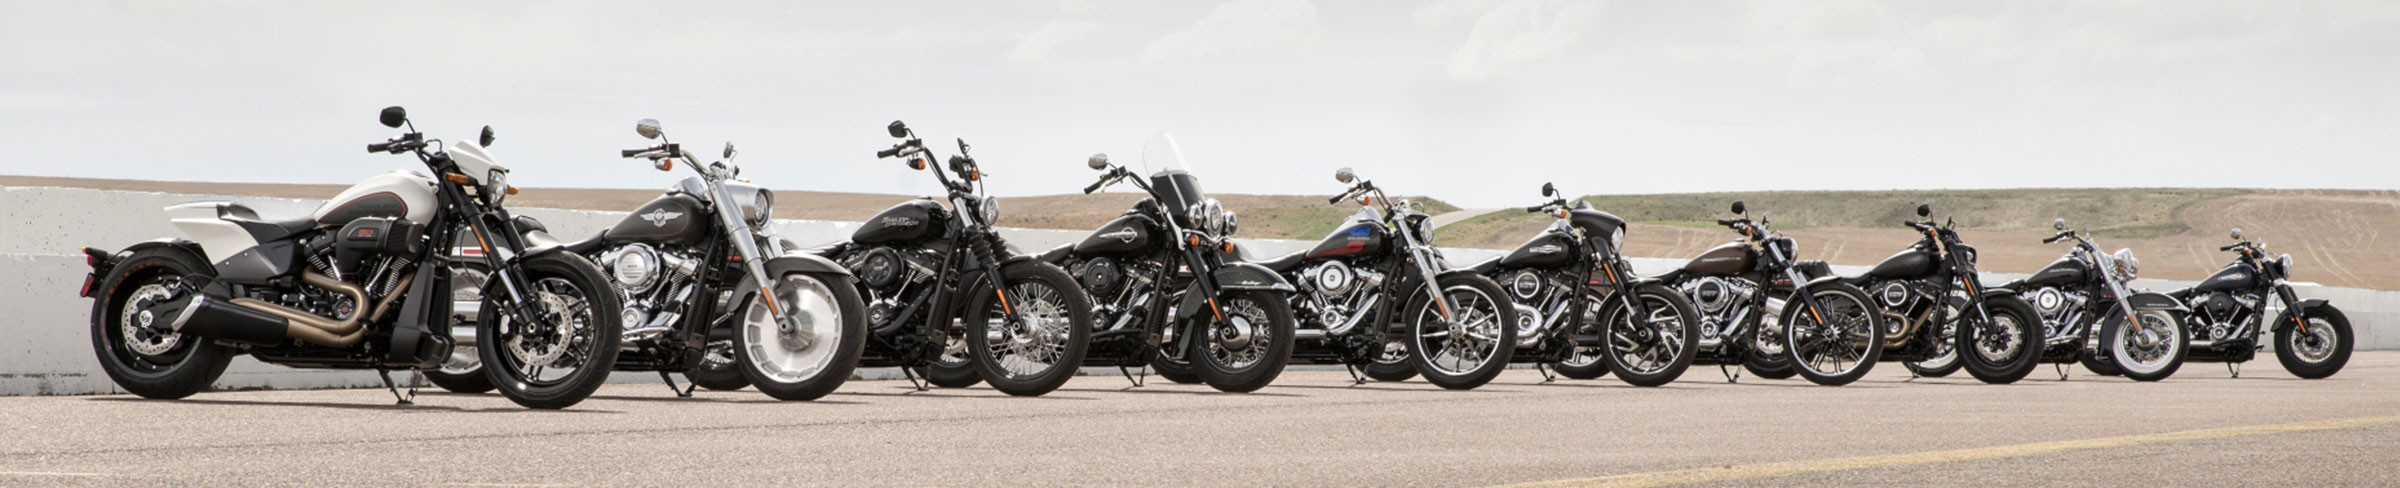 Career opportunities at Sheldon's Harley-Davidson®